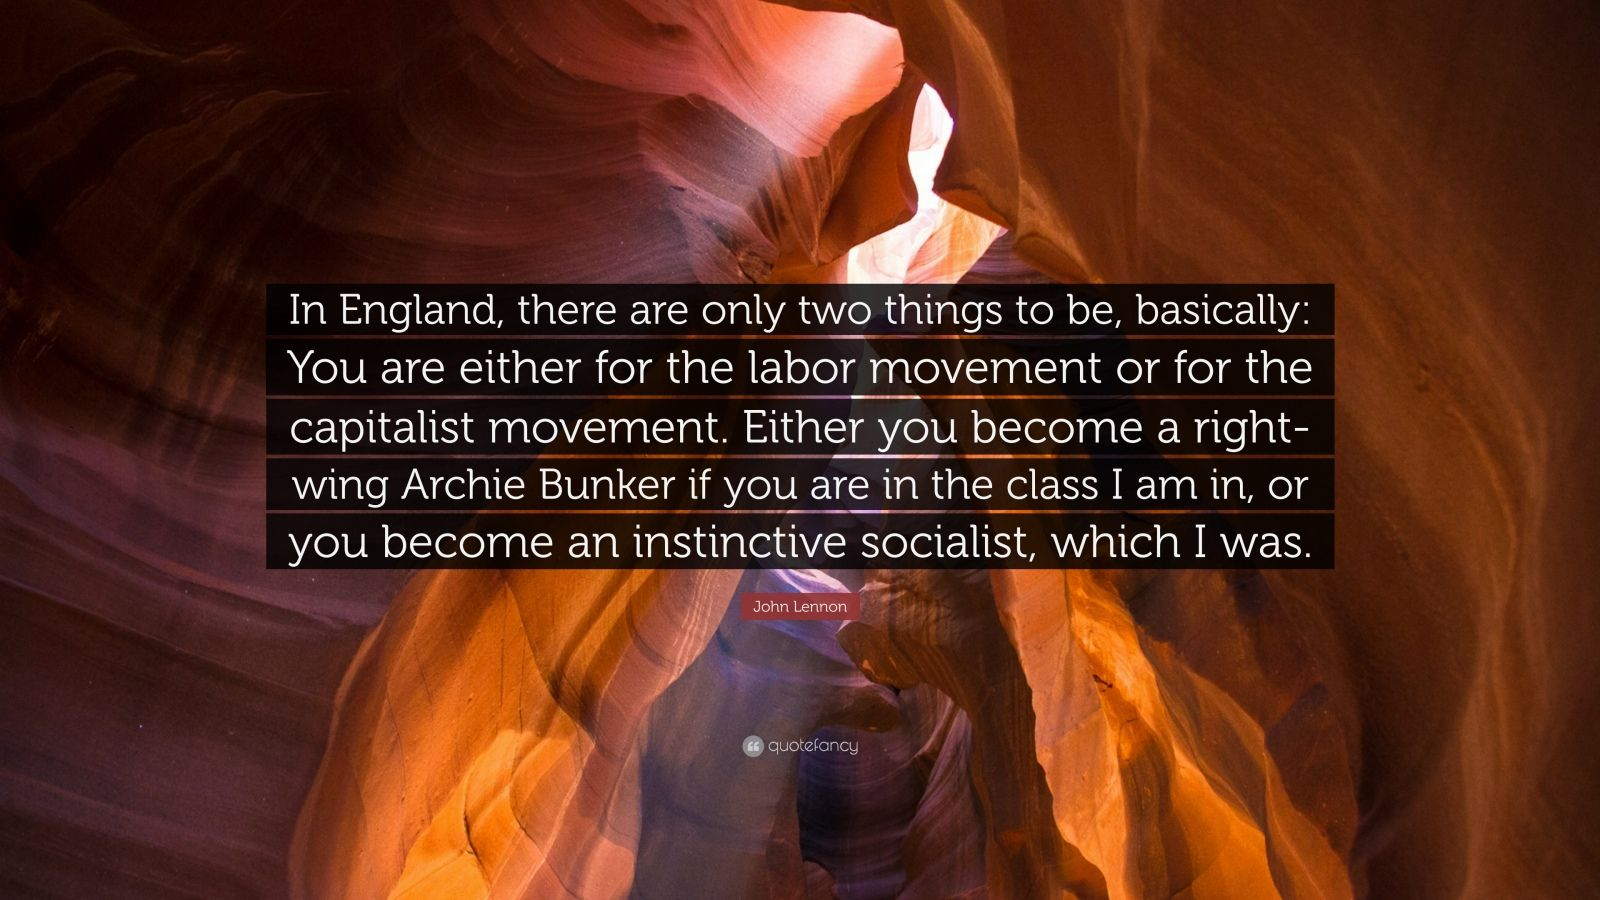 "John Lennon Quote: ""In England, there are only two things to be, basically: You are either for the labor movement or for the capitalist movement. Either you become a right-wing Archie Bunker if you are in the class I am in, or you become an instinctive socialist, which I was."""